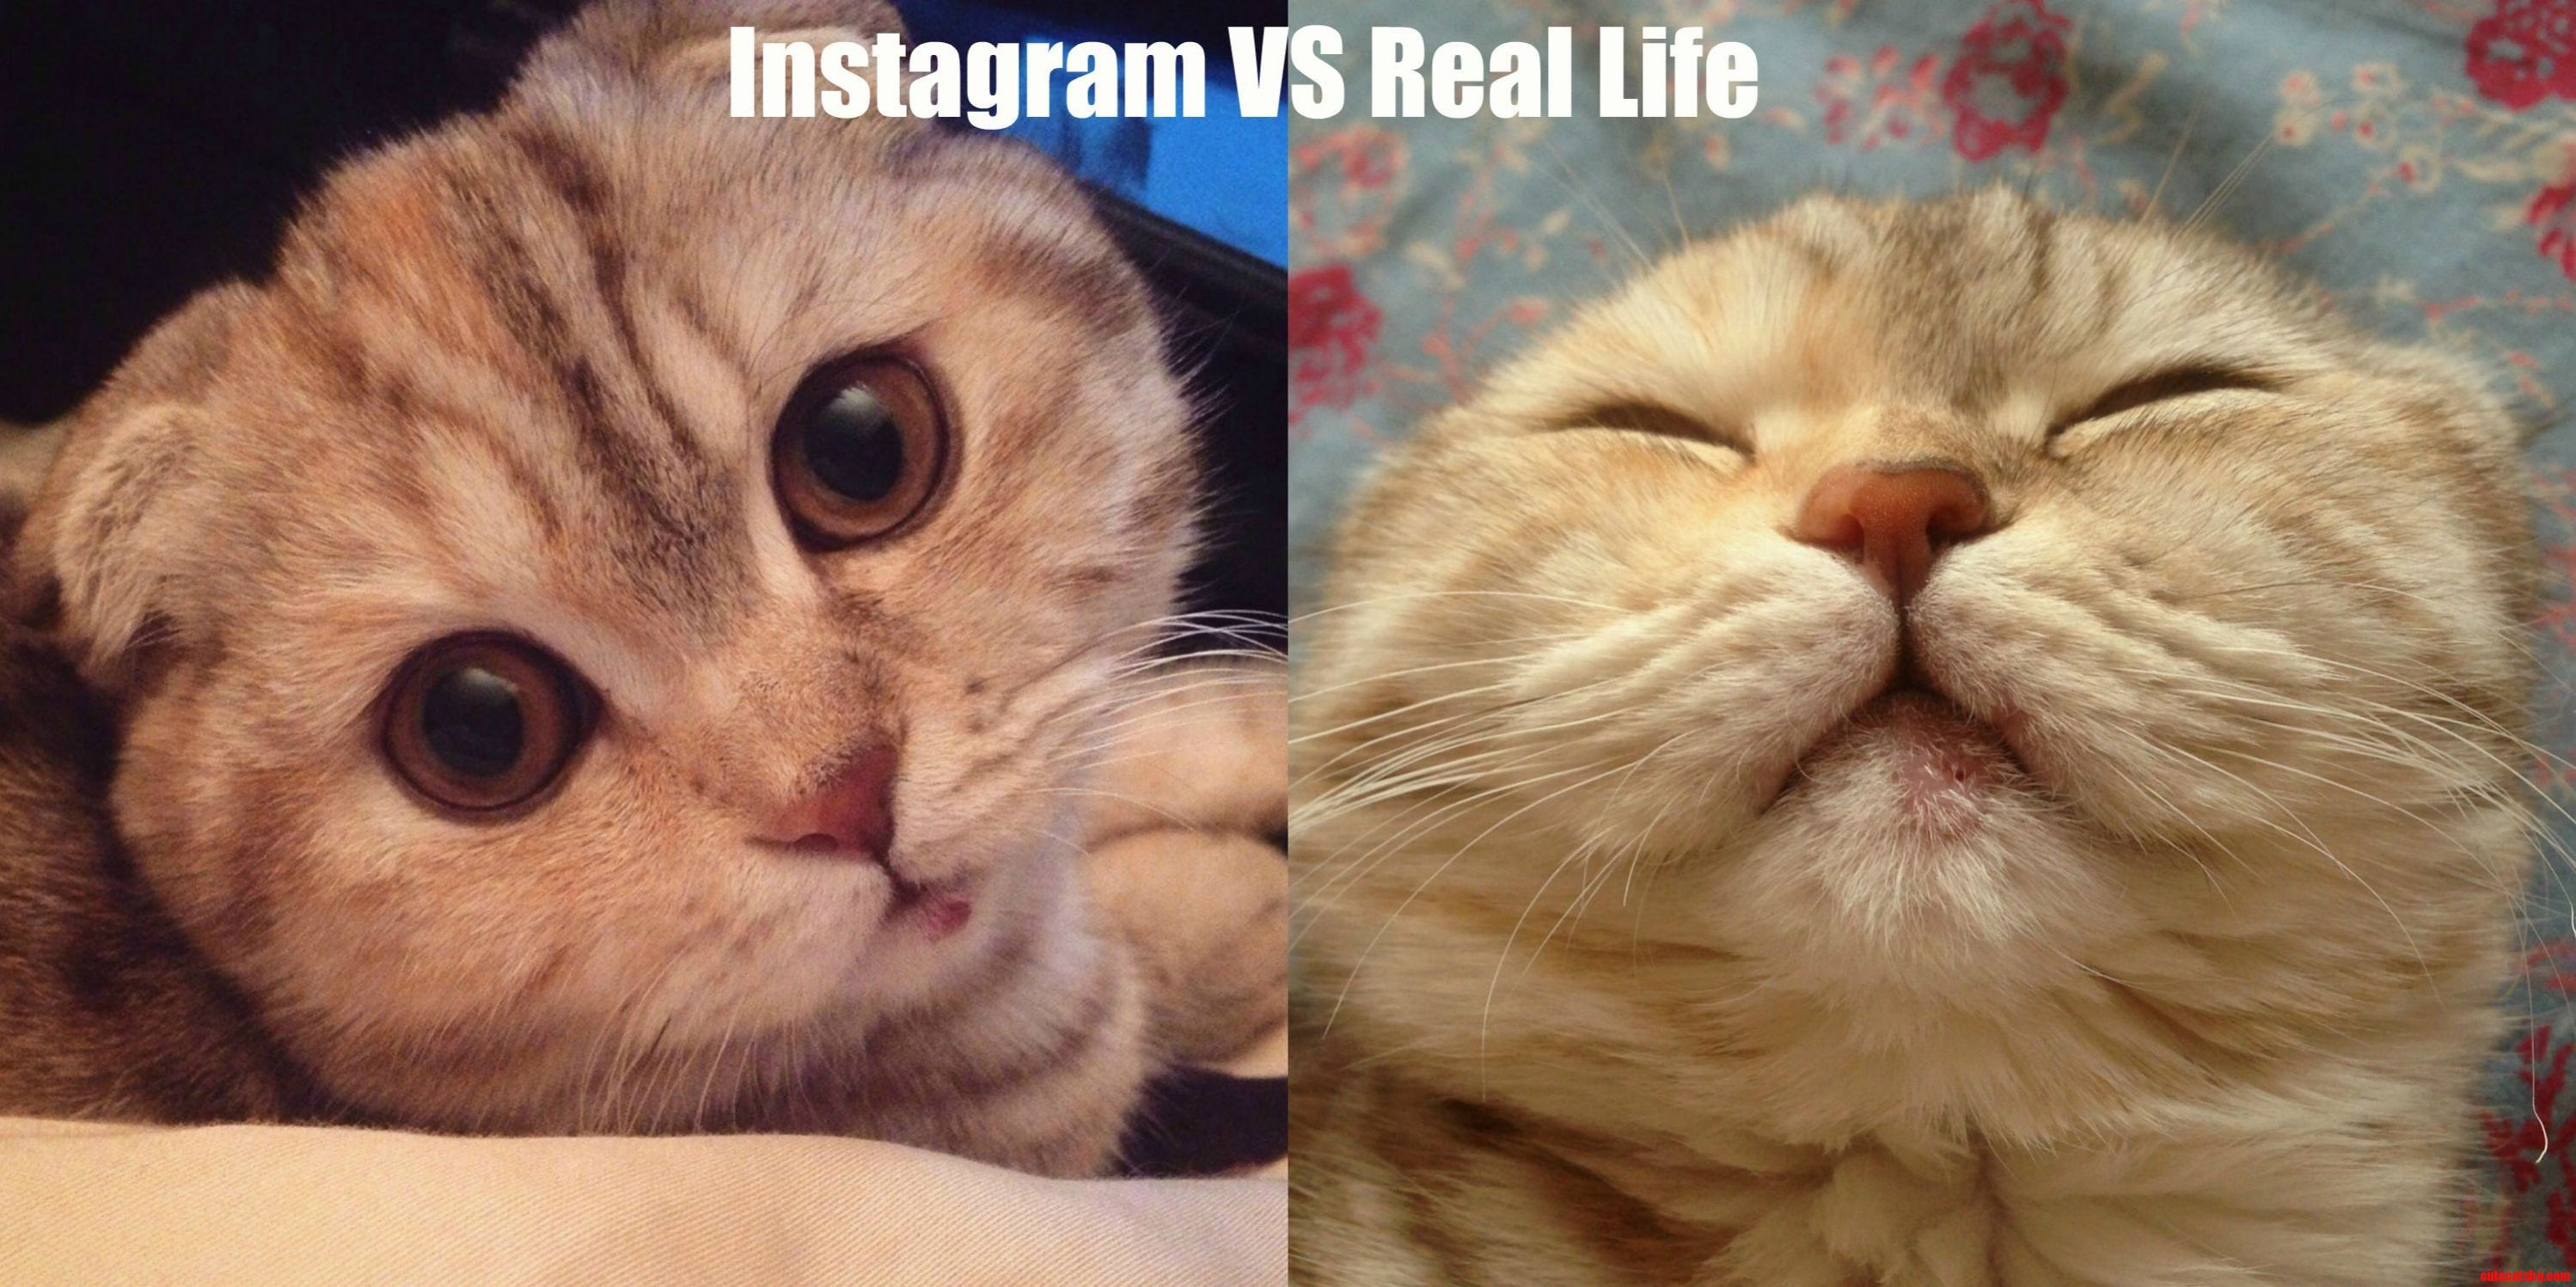 Online dating versus real life